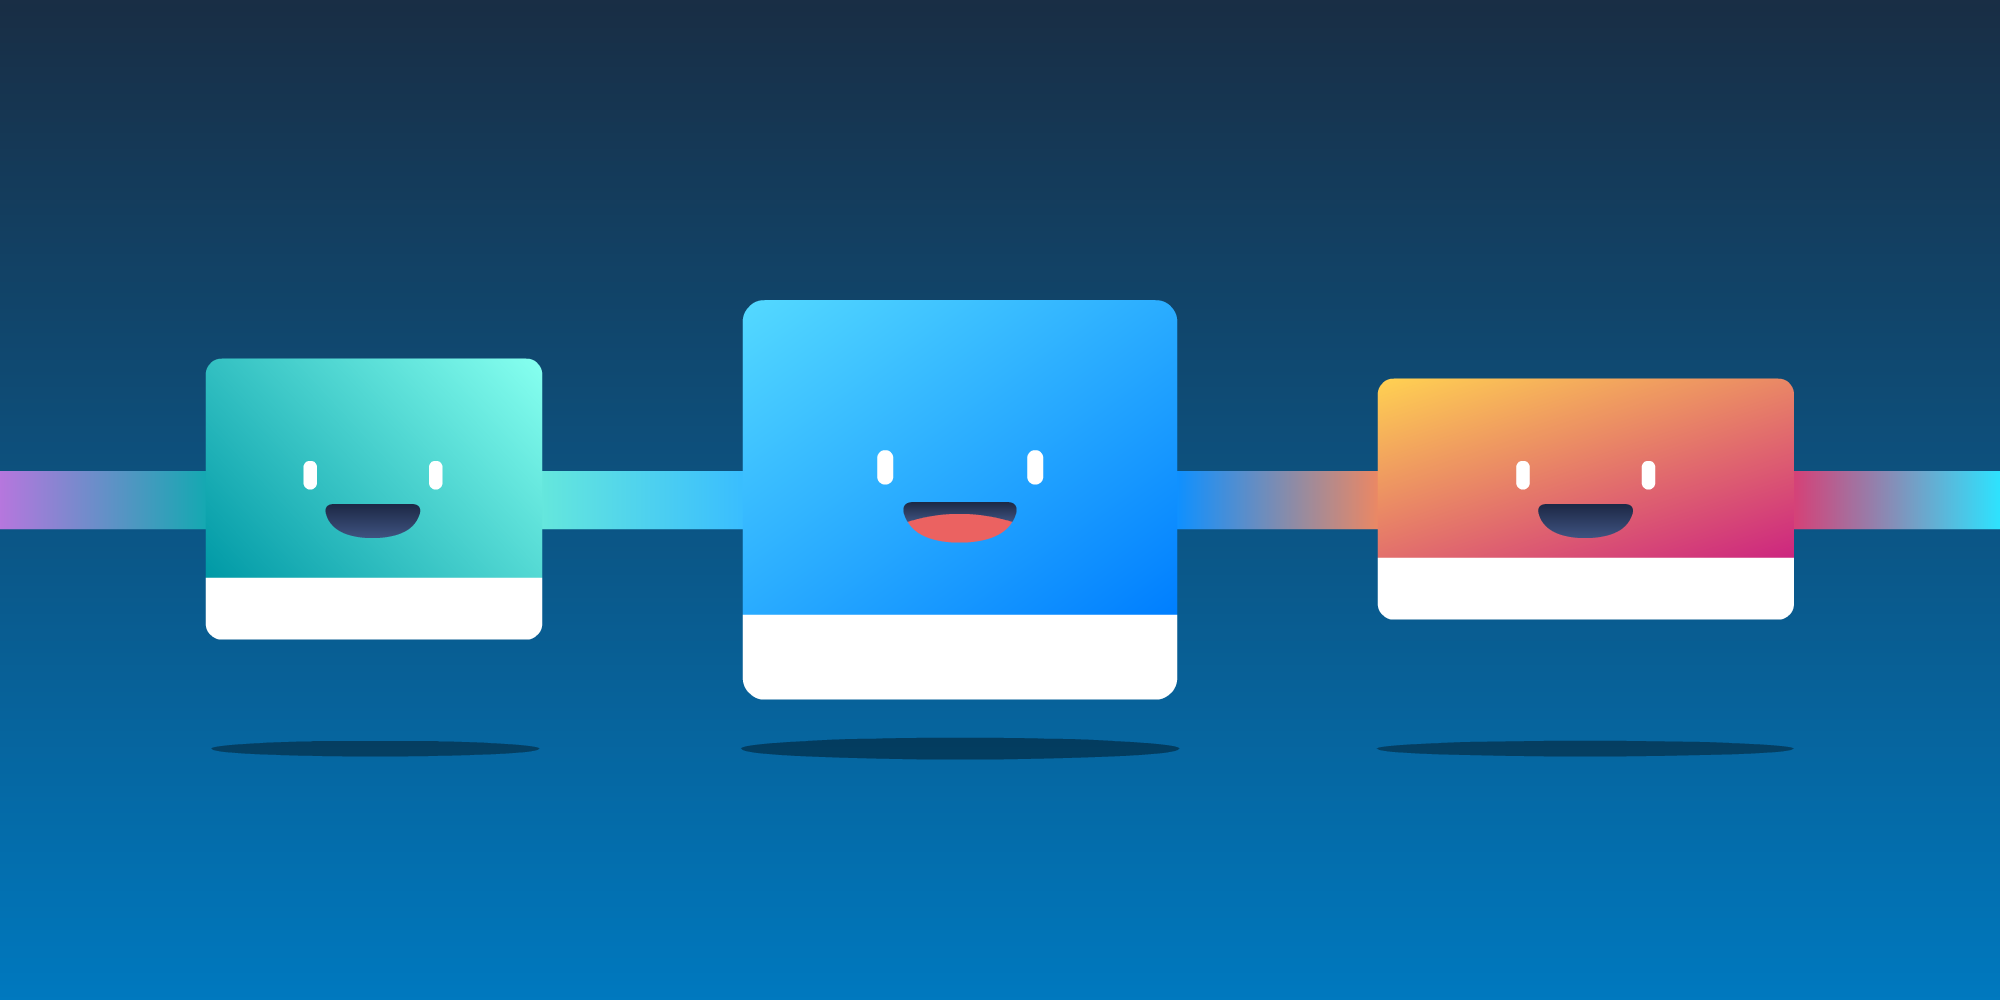 Related Cards & Boards: Keep Your Trello Life Connected